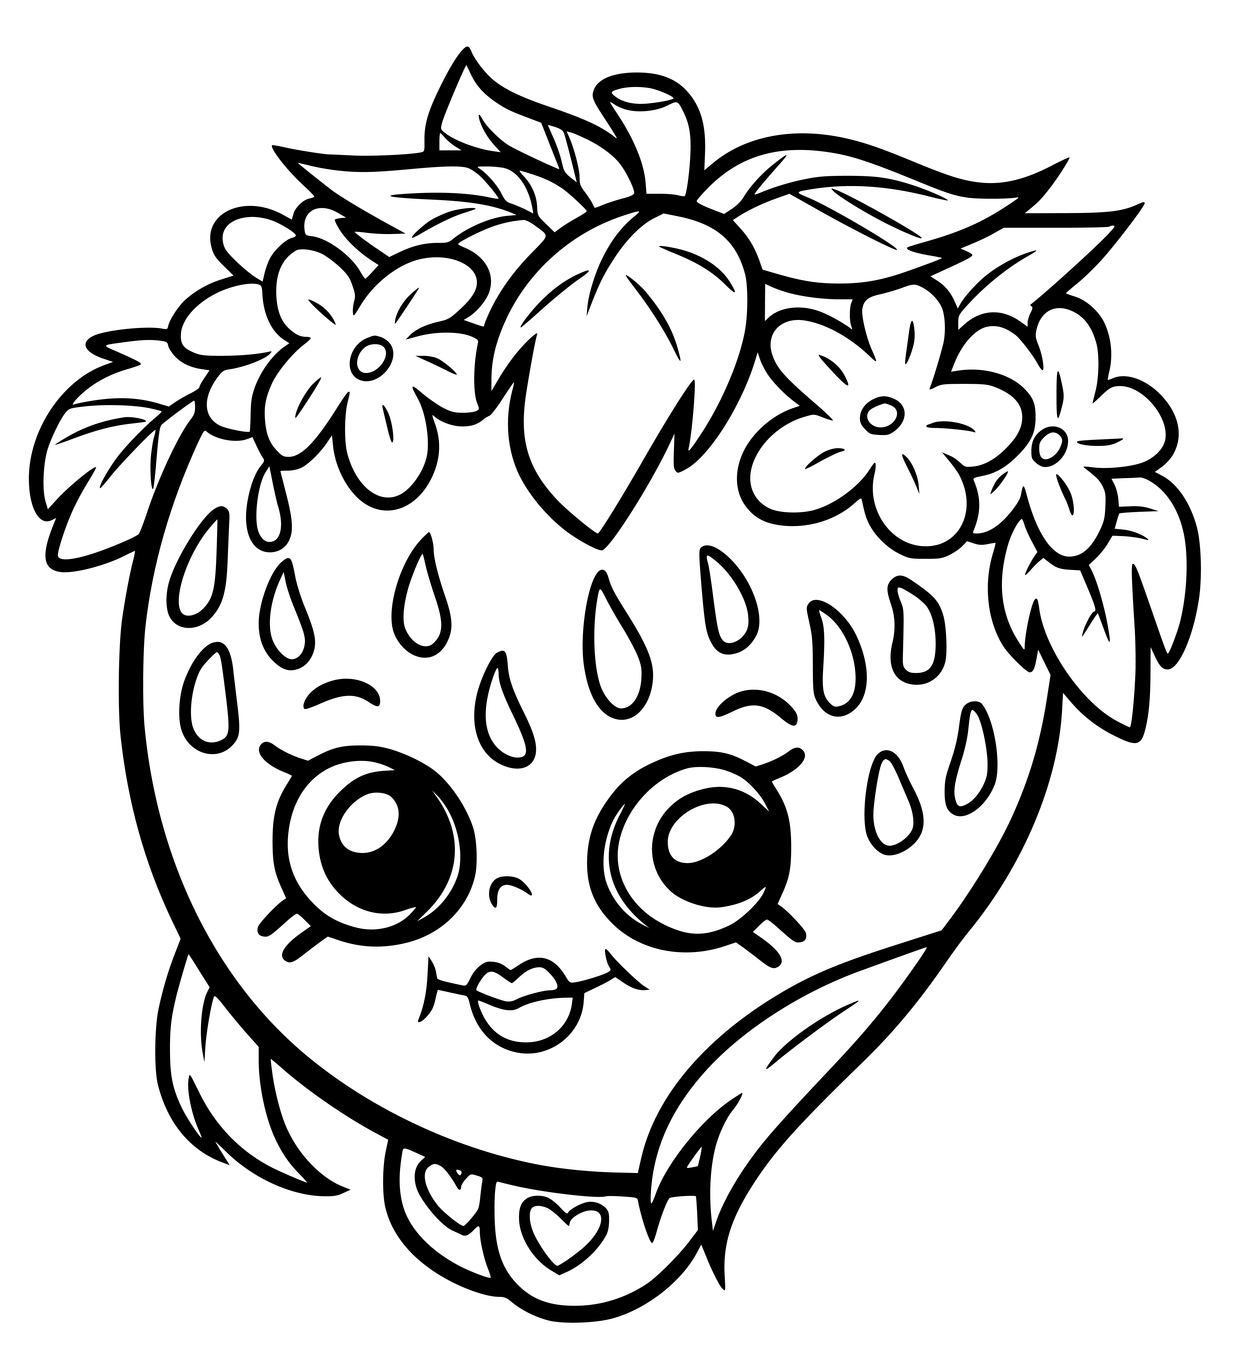 1240x1359 Cute Shopkins Coloring Page